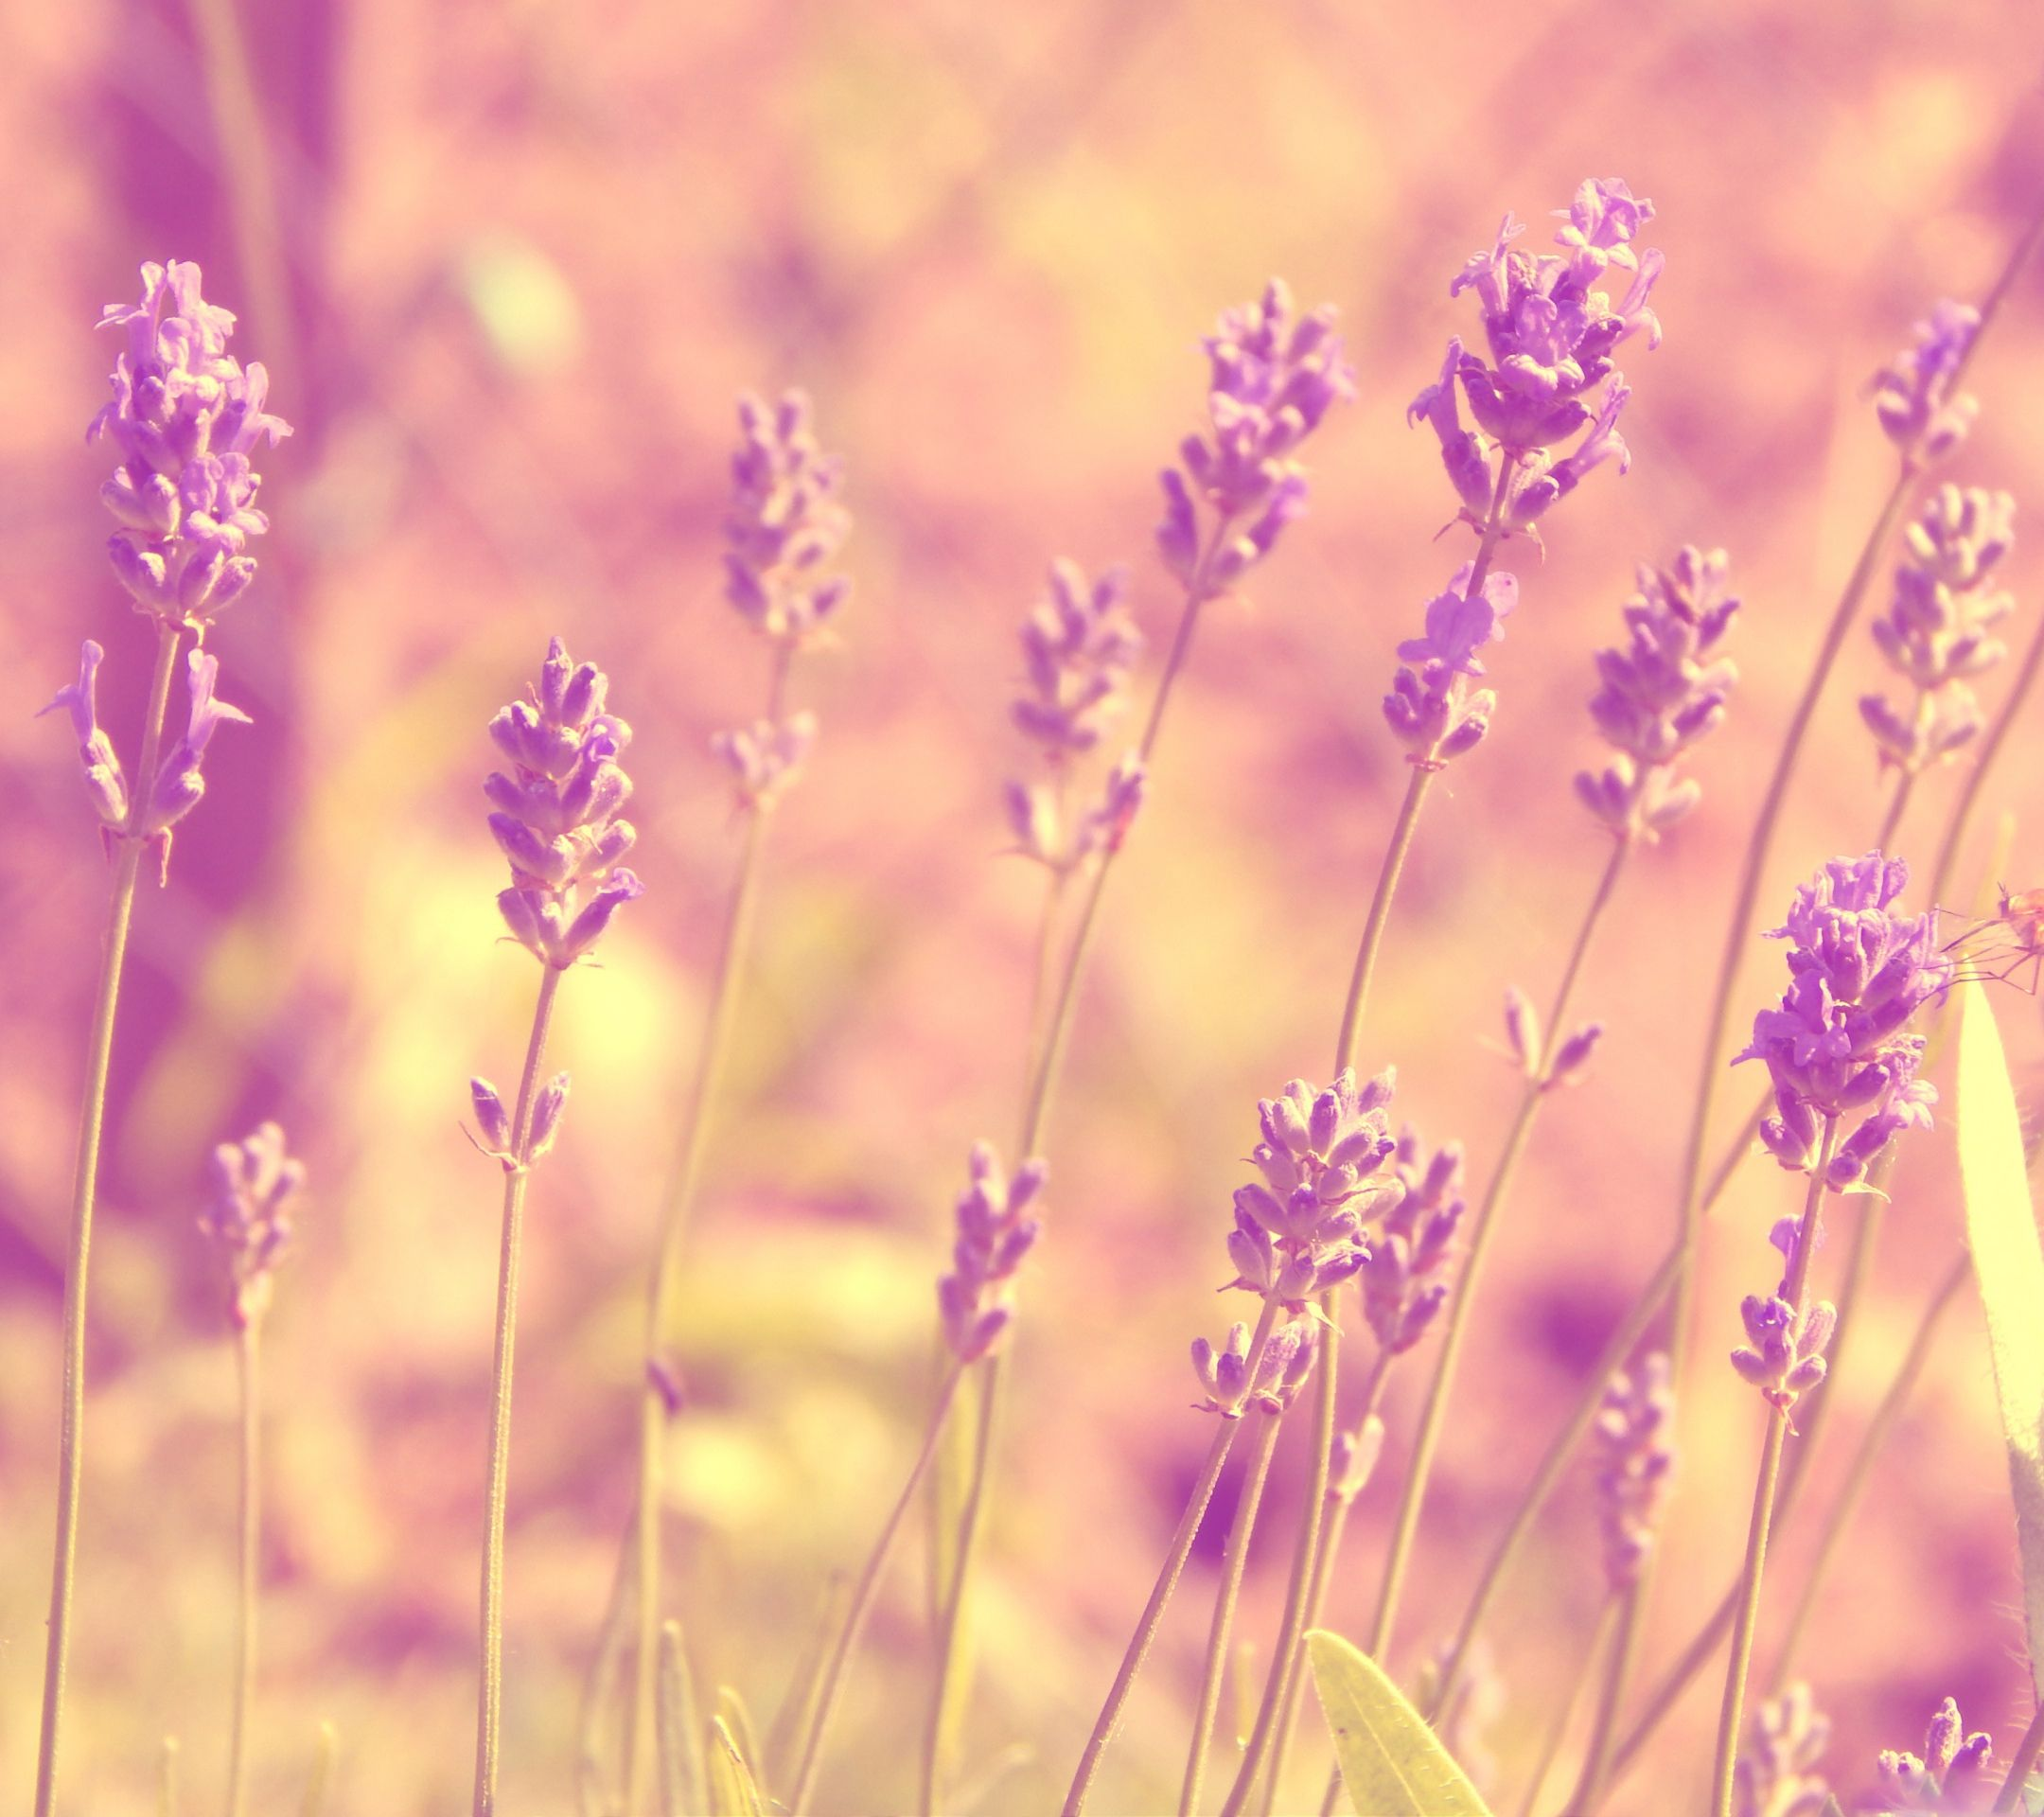 Lavender Tap To See More Pinky Girly Android Hd Wallpapers,